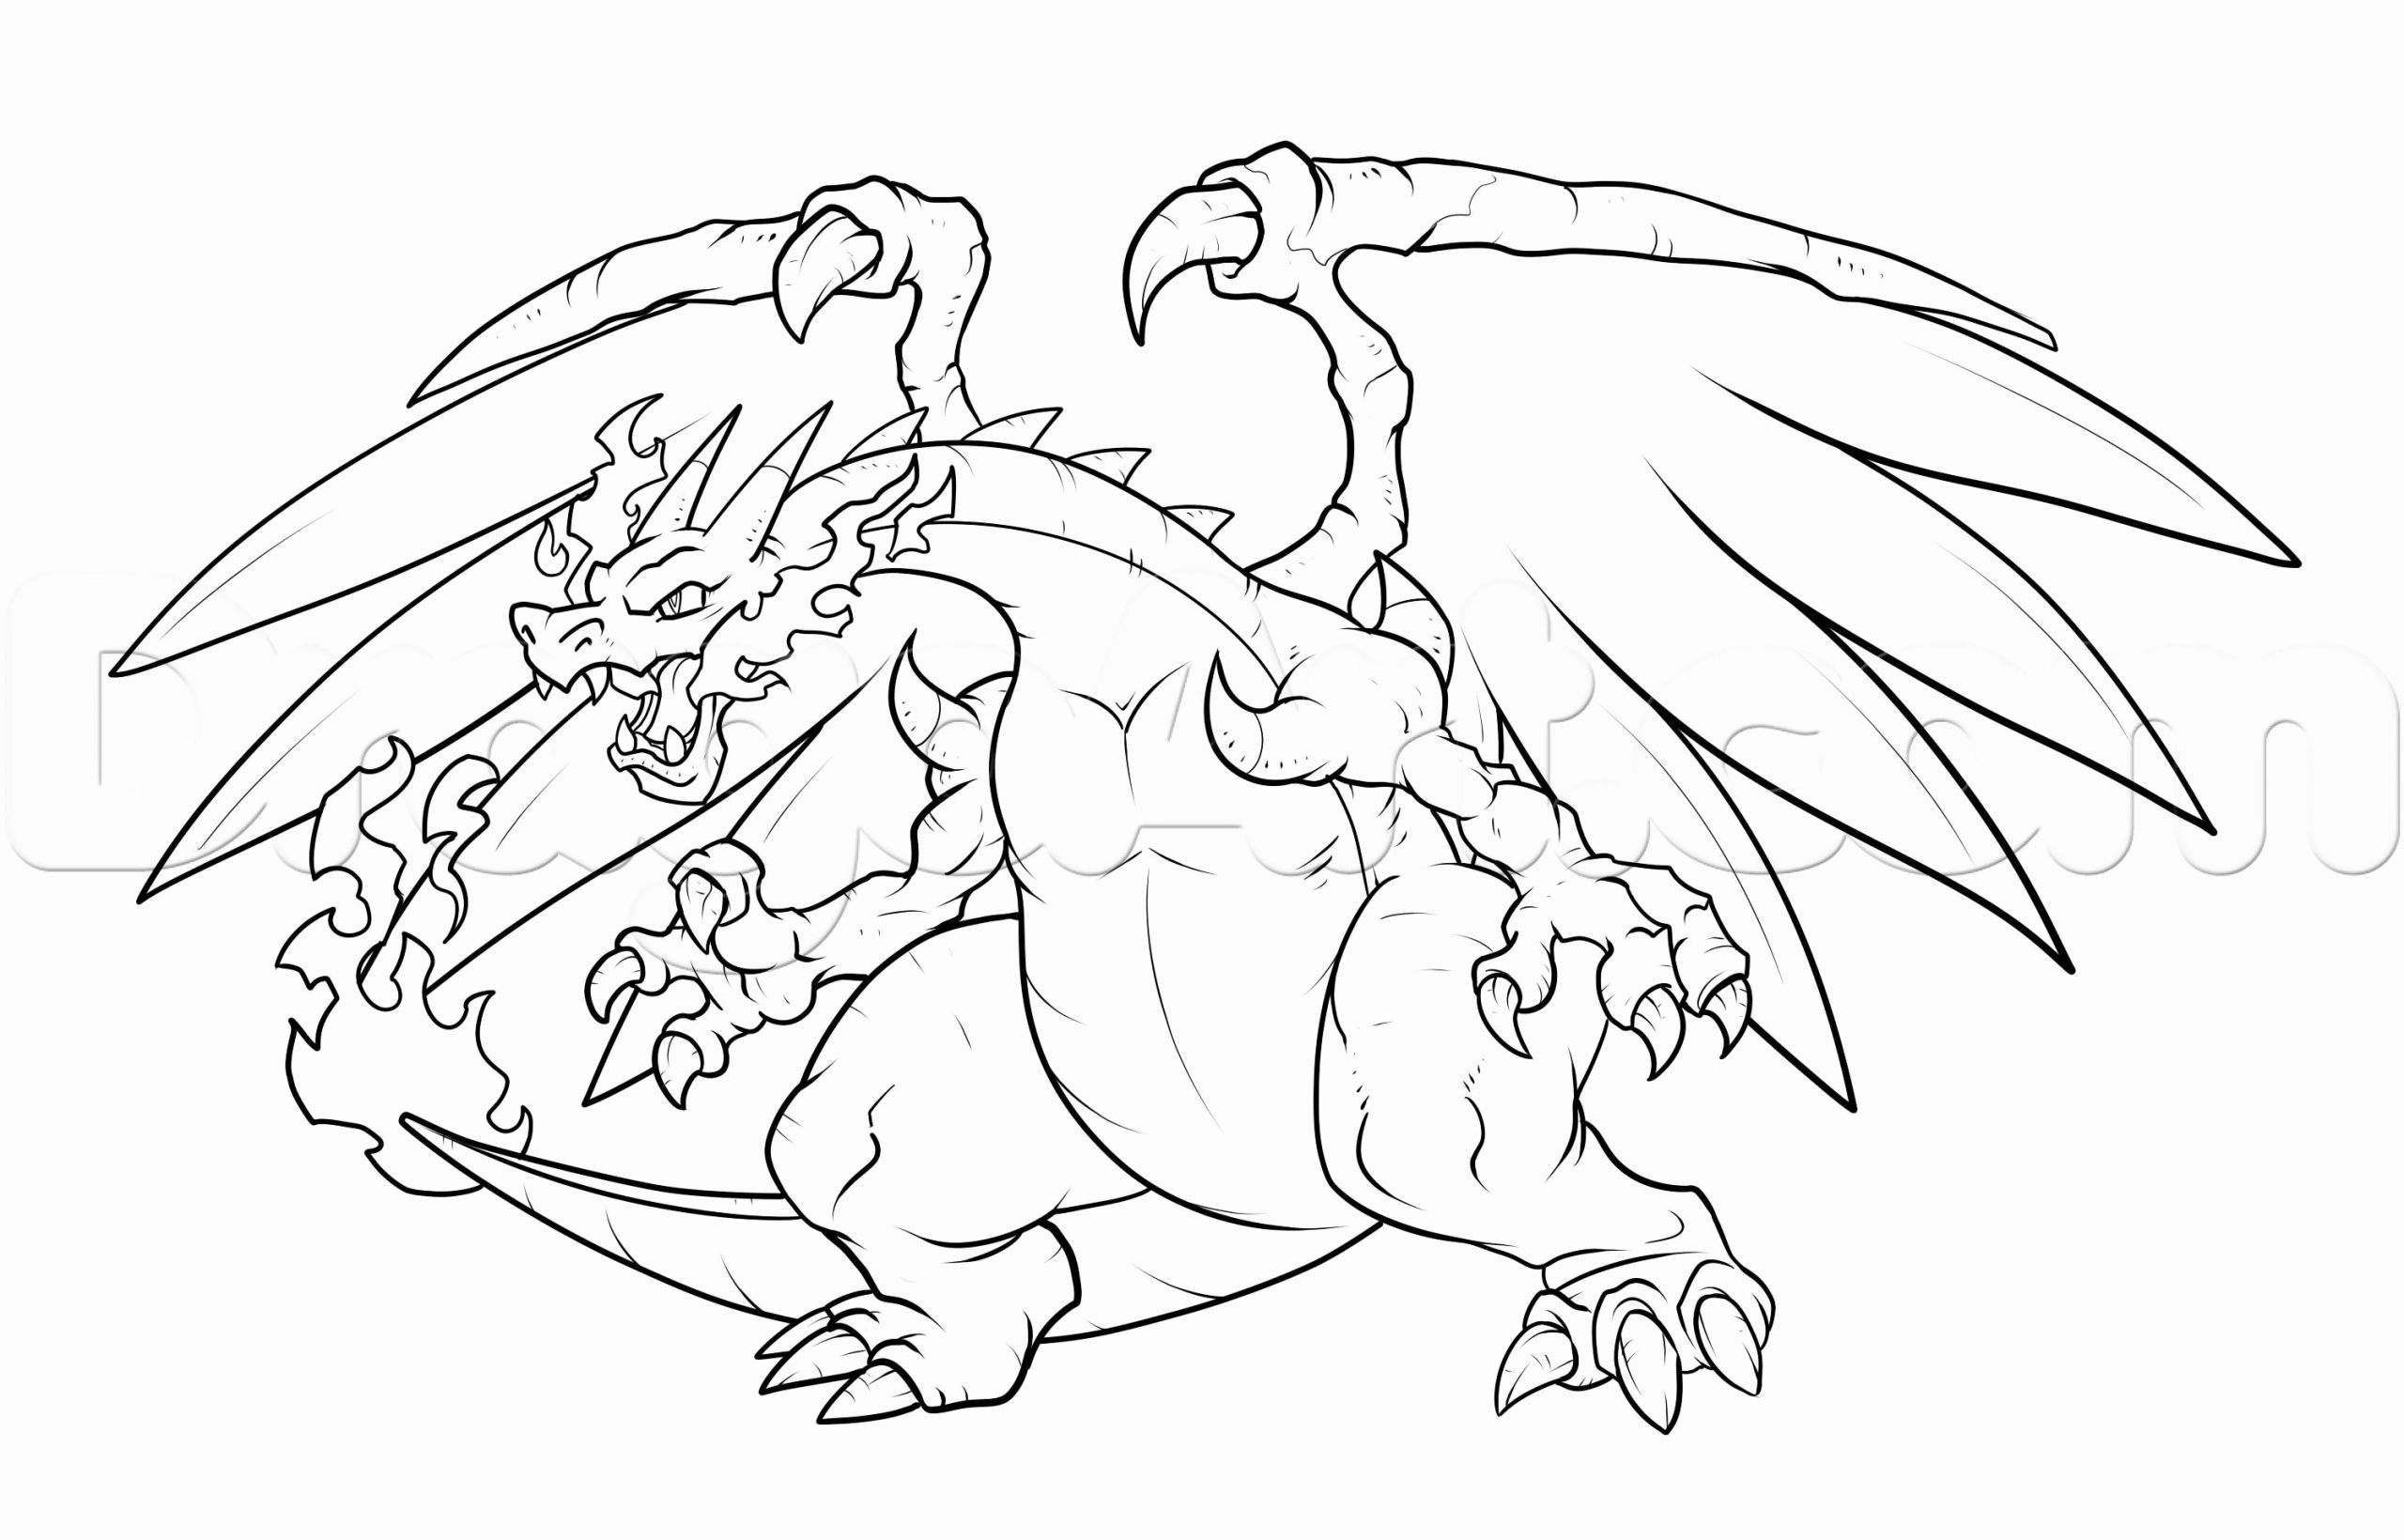 Mega Charizard X Coloring Page Inspirational Pokemon Coloring Pages Mega Mewtwo X From The Thousa In 2020 Pokemon Coloring Pages Moon Coloring Pages Pokemon Coloring